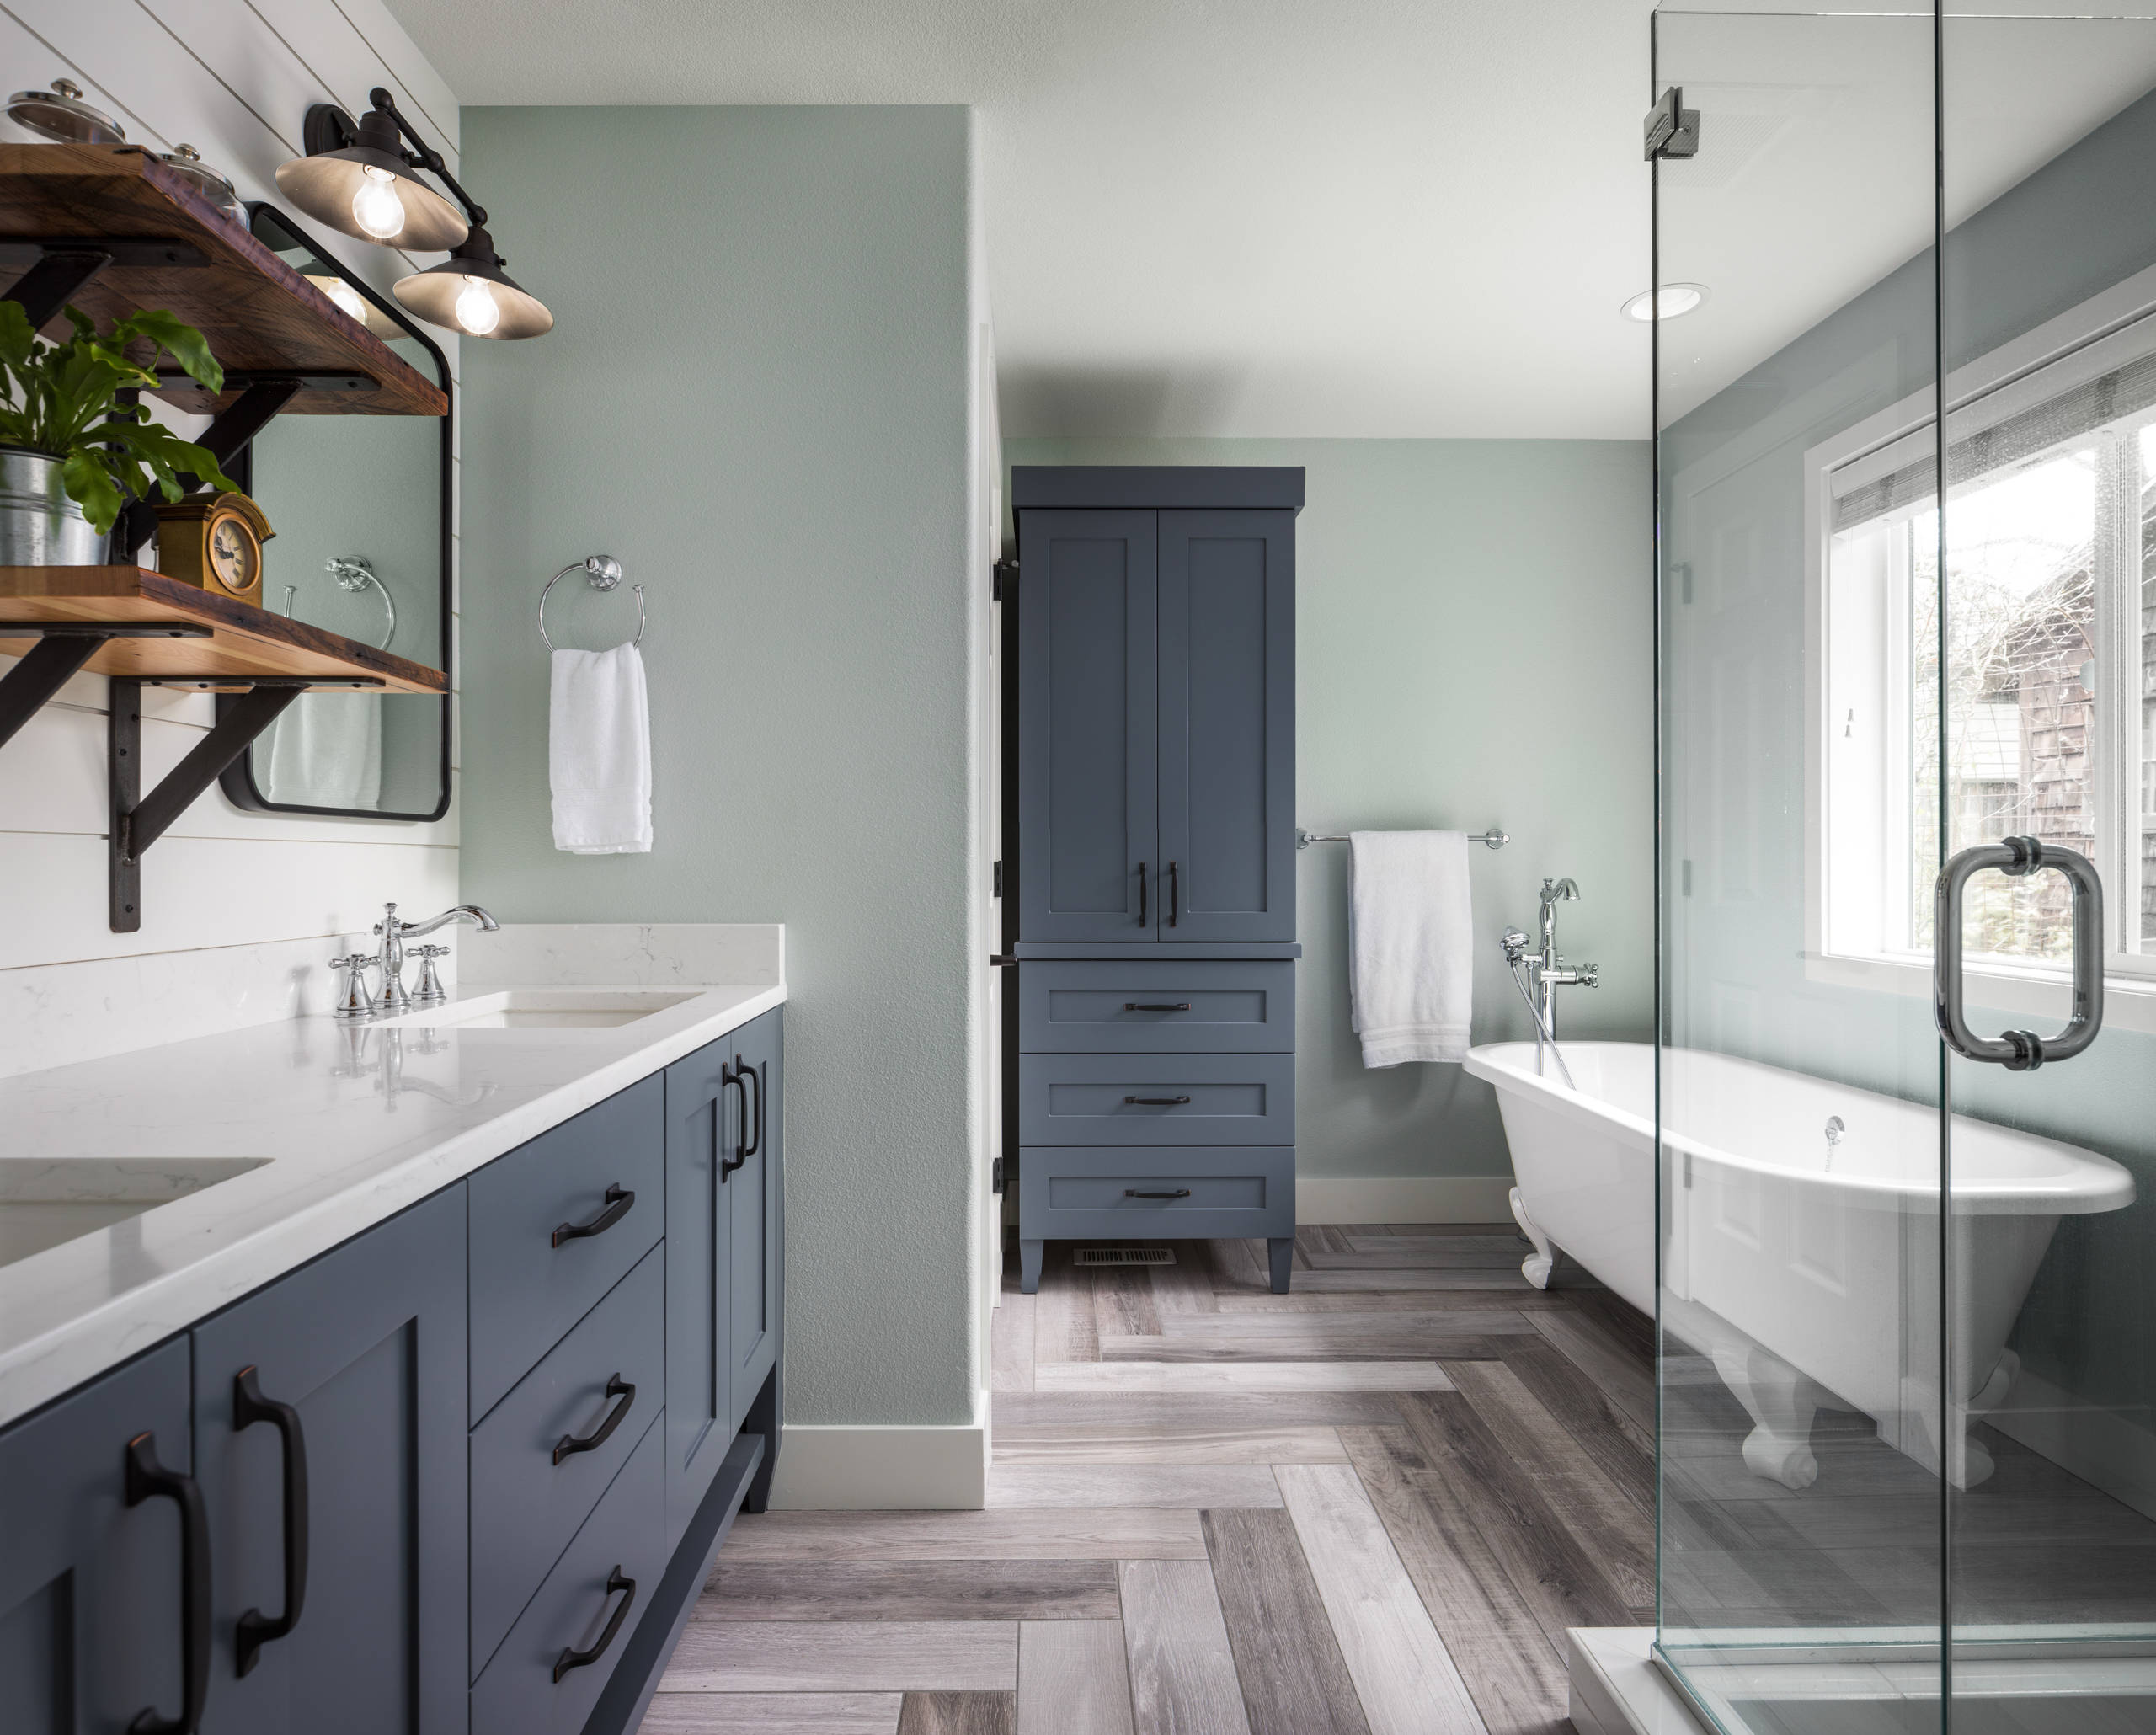 75 Beautiful Bathroom With Green Walls Pictures Ideas February 2021 Houzz